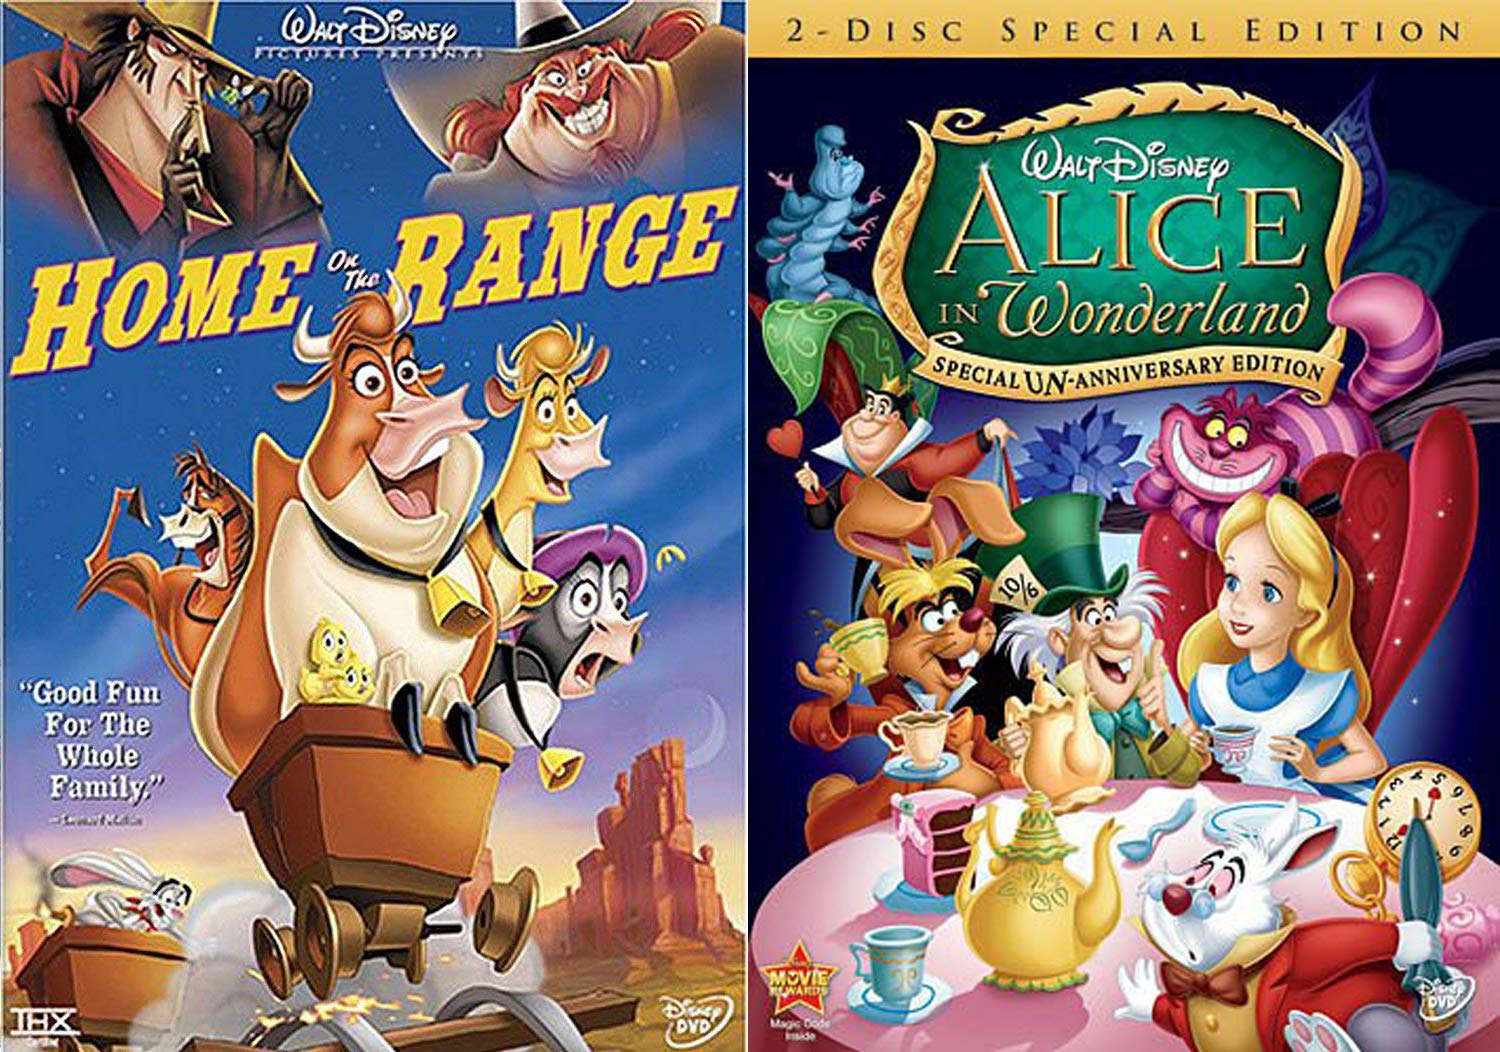 Un-Anniversary Cartoon Alice in WonderLand 2 Disc + Tales: Disney's Home On The Range Double Feature DVD Pack ...Late for a very important date!